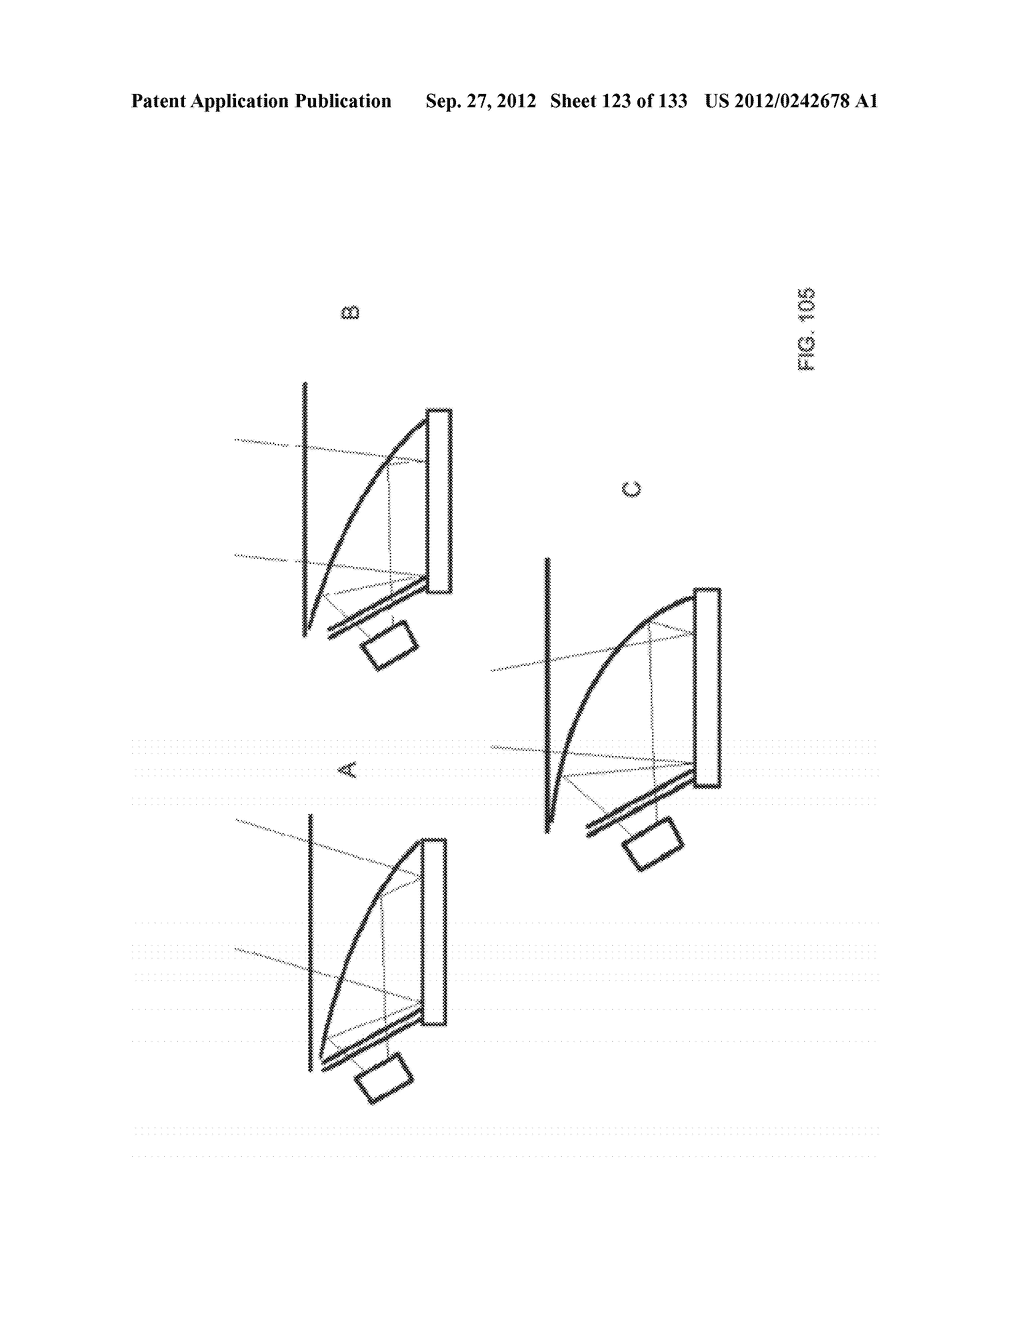 SEE-THROUGH NEAR-EYE DISPLAY GLASSES INCLUDING AN AUTO-BRIGHTNESS CONTROL     FOR THE DISPLAY BRIGHTNESS BASED ON THE BRIGHTNESS IN THE ENVIRONMENT - diagram, schematic, and image 124